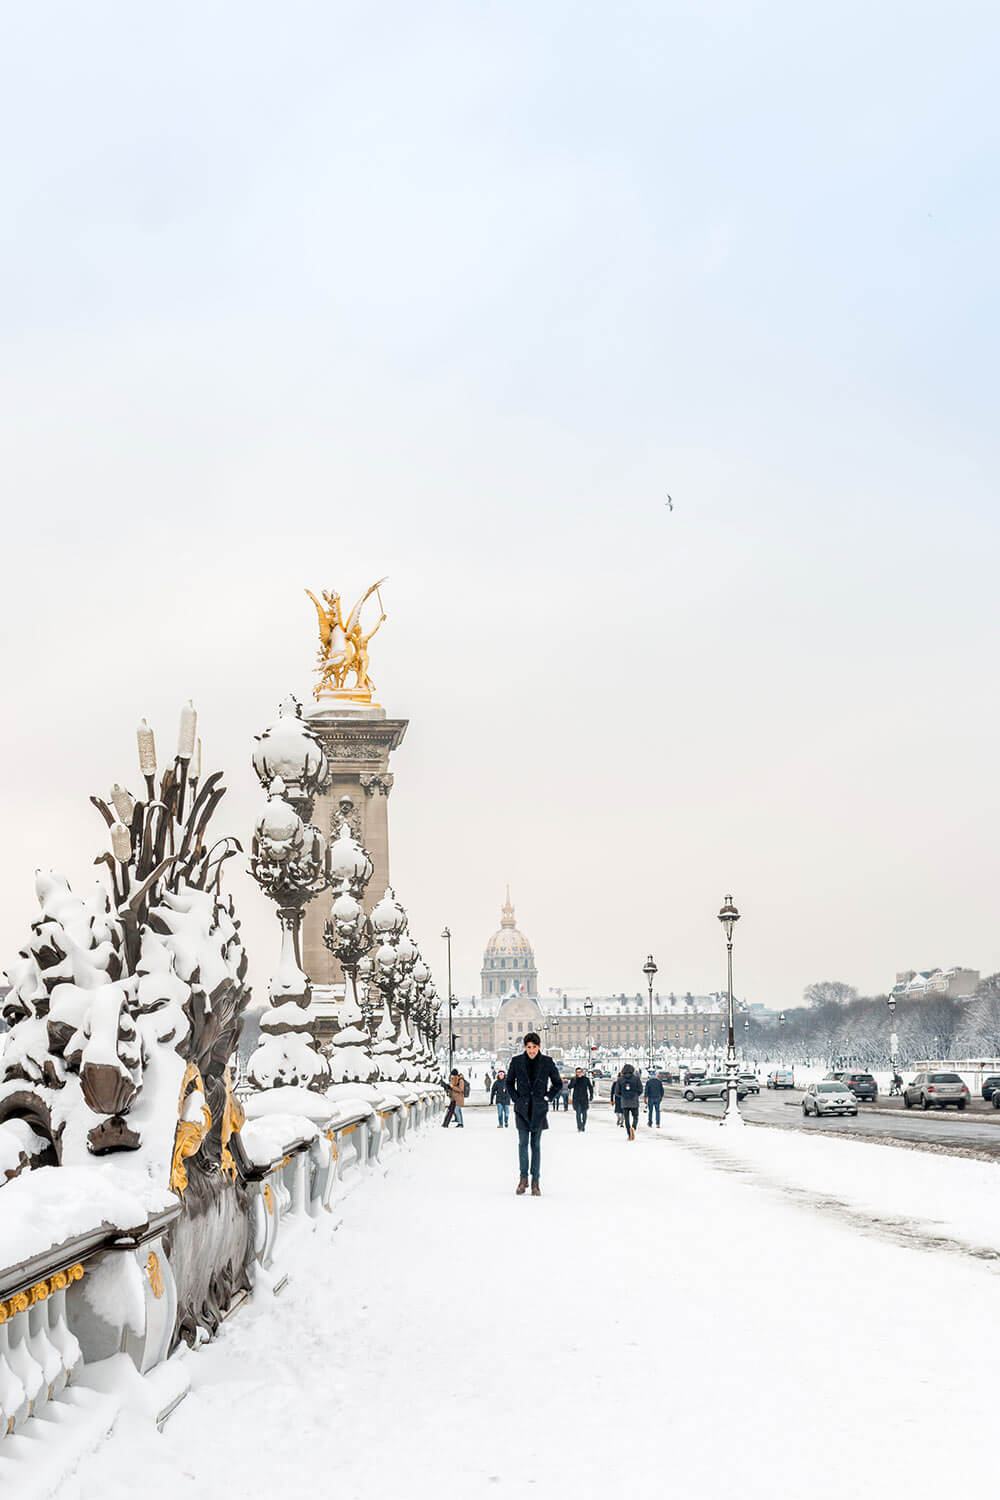 Winter-in-Paris-6.jpg